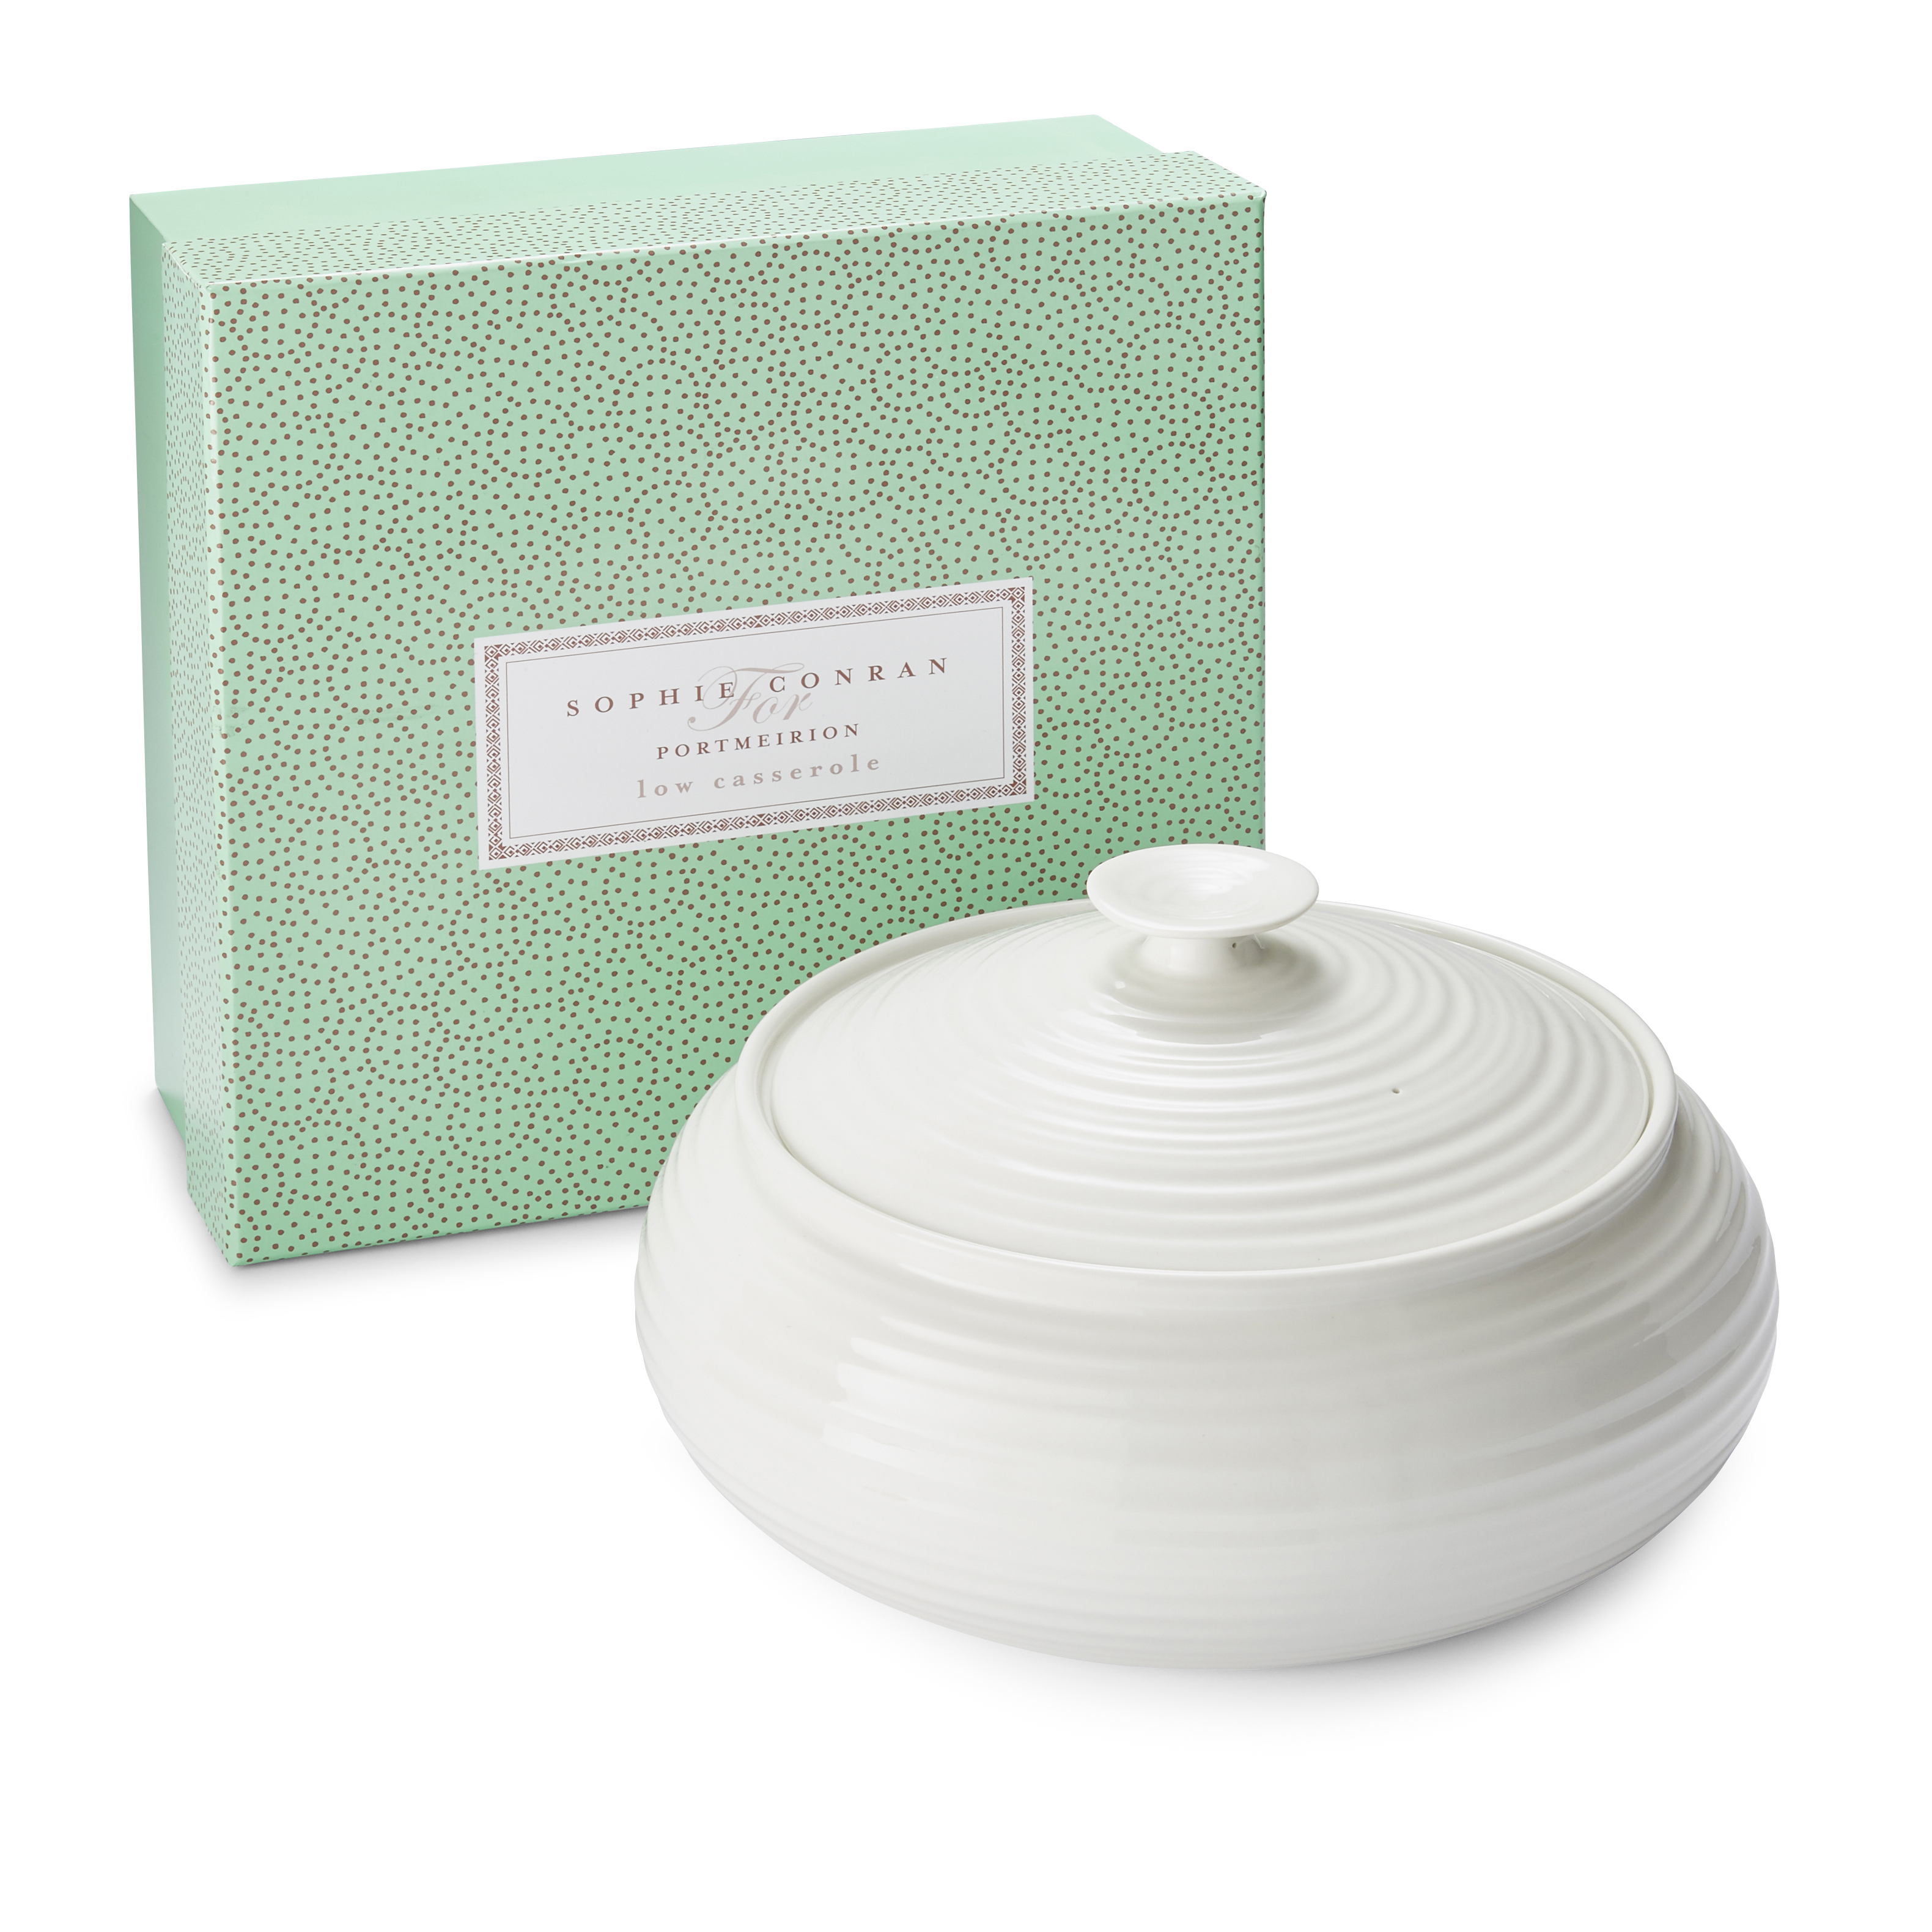 Portmeirion Sophie Conran White Low Covered Casserole image number 2